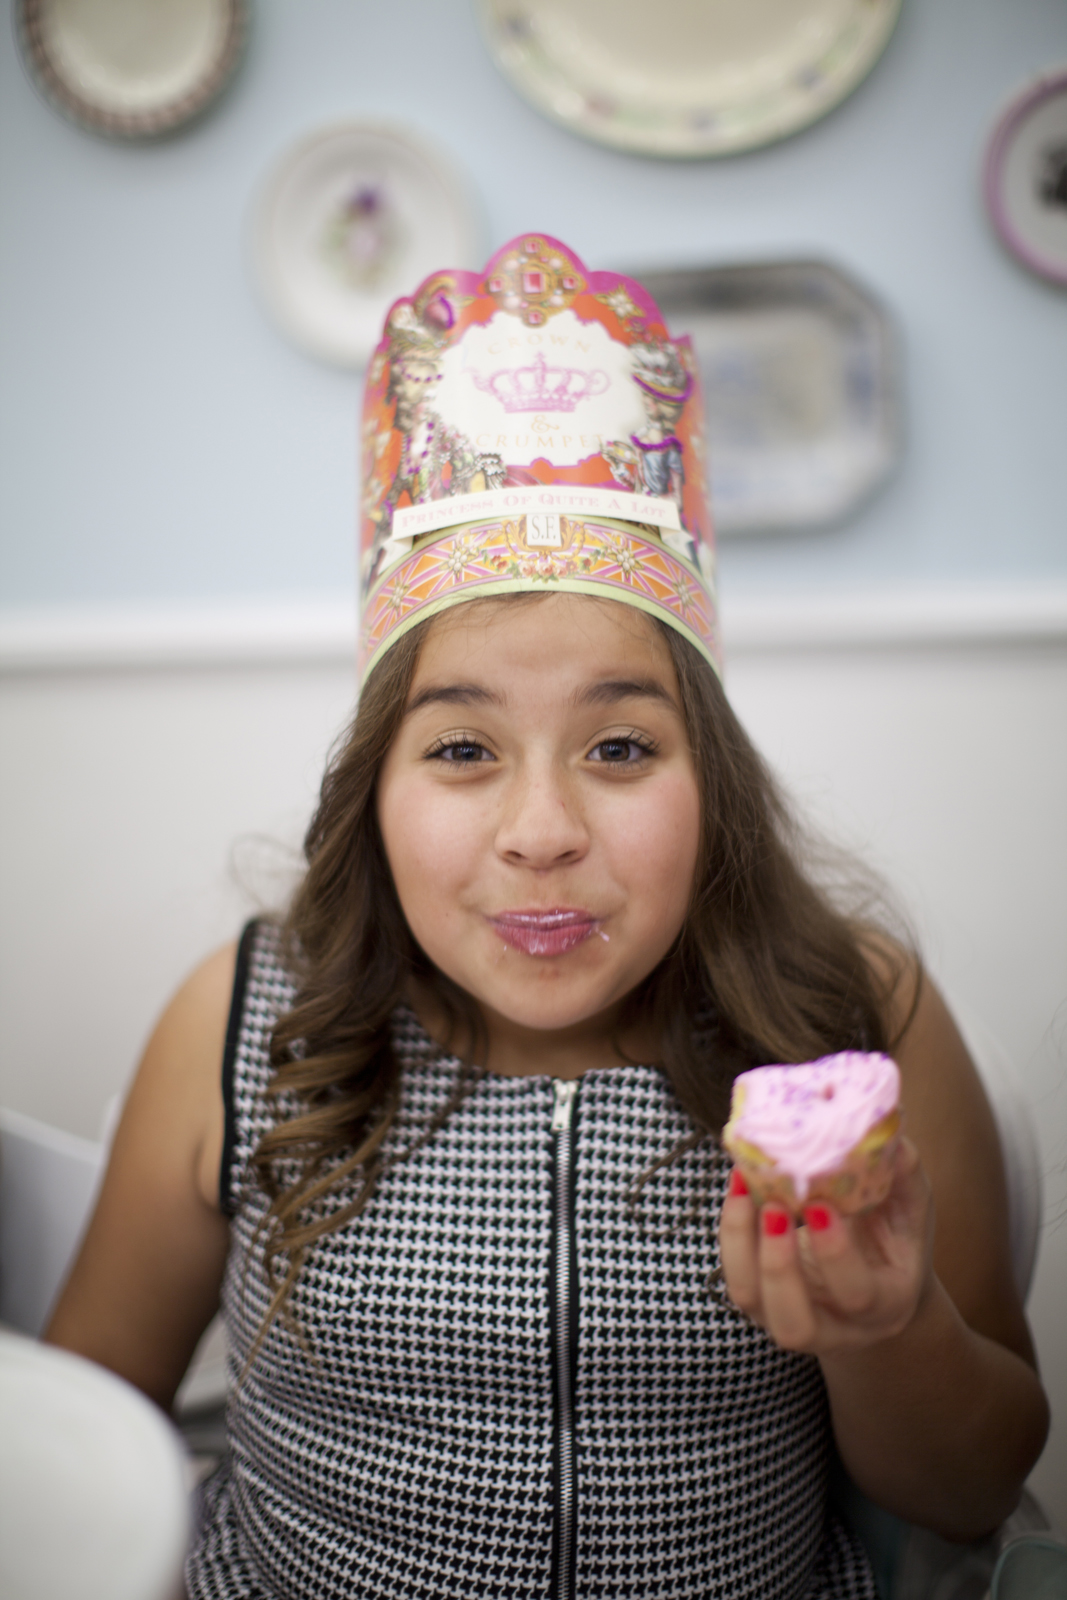 sophia_tea_party_crown_and_crumpet_san_francisco_photography_123.jpg